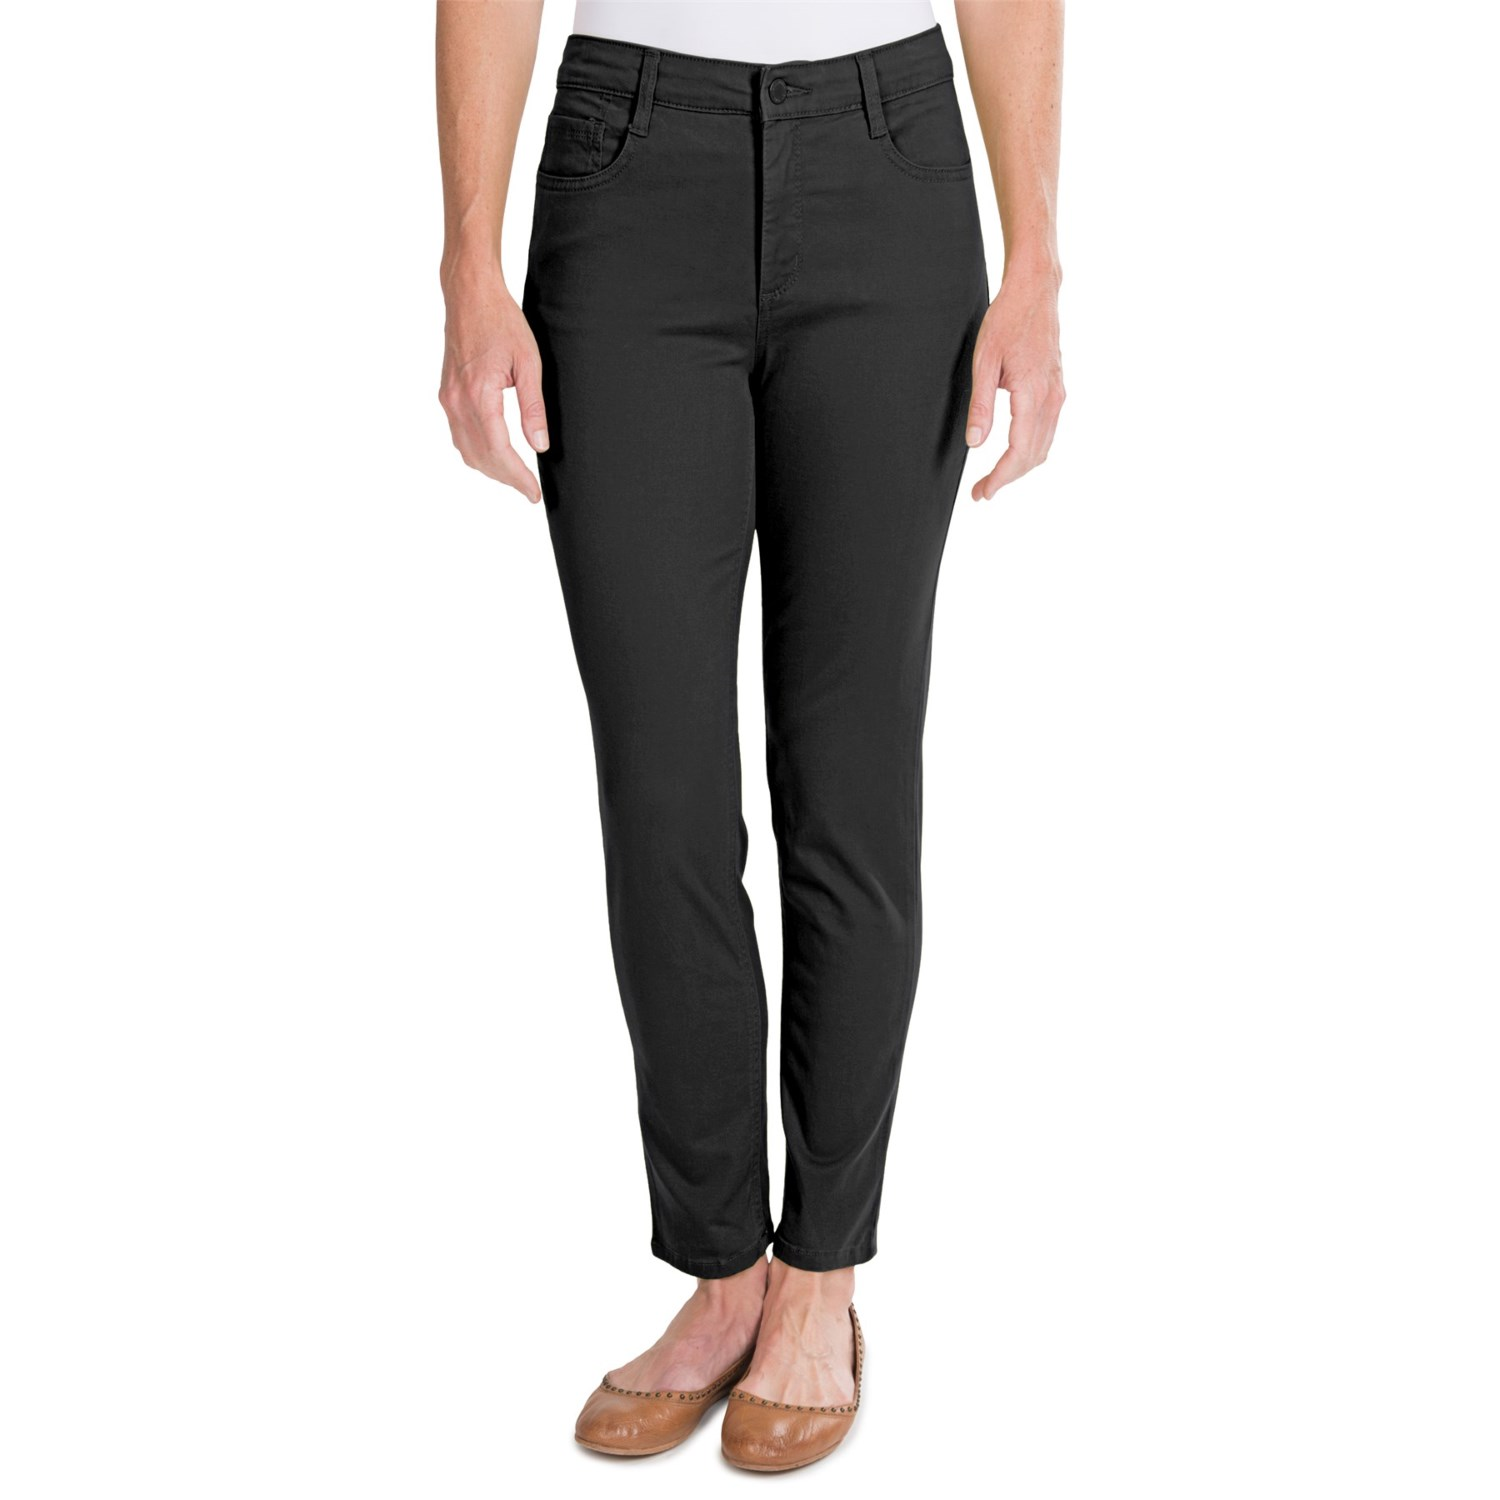 A trending, popular style, women's colored jeans are the favorites of women who know fashion. Enjoy designer color jeans for women for an effortlessly chic look. Step out in style and fun in ultra-flattering colored jeans for women from Gap.